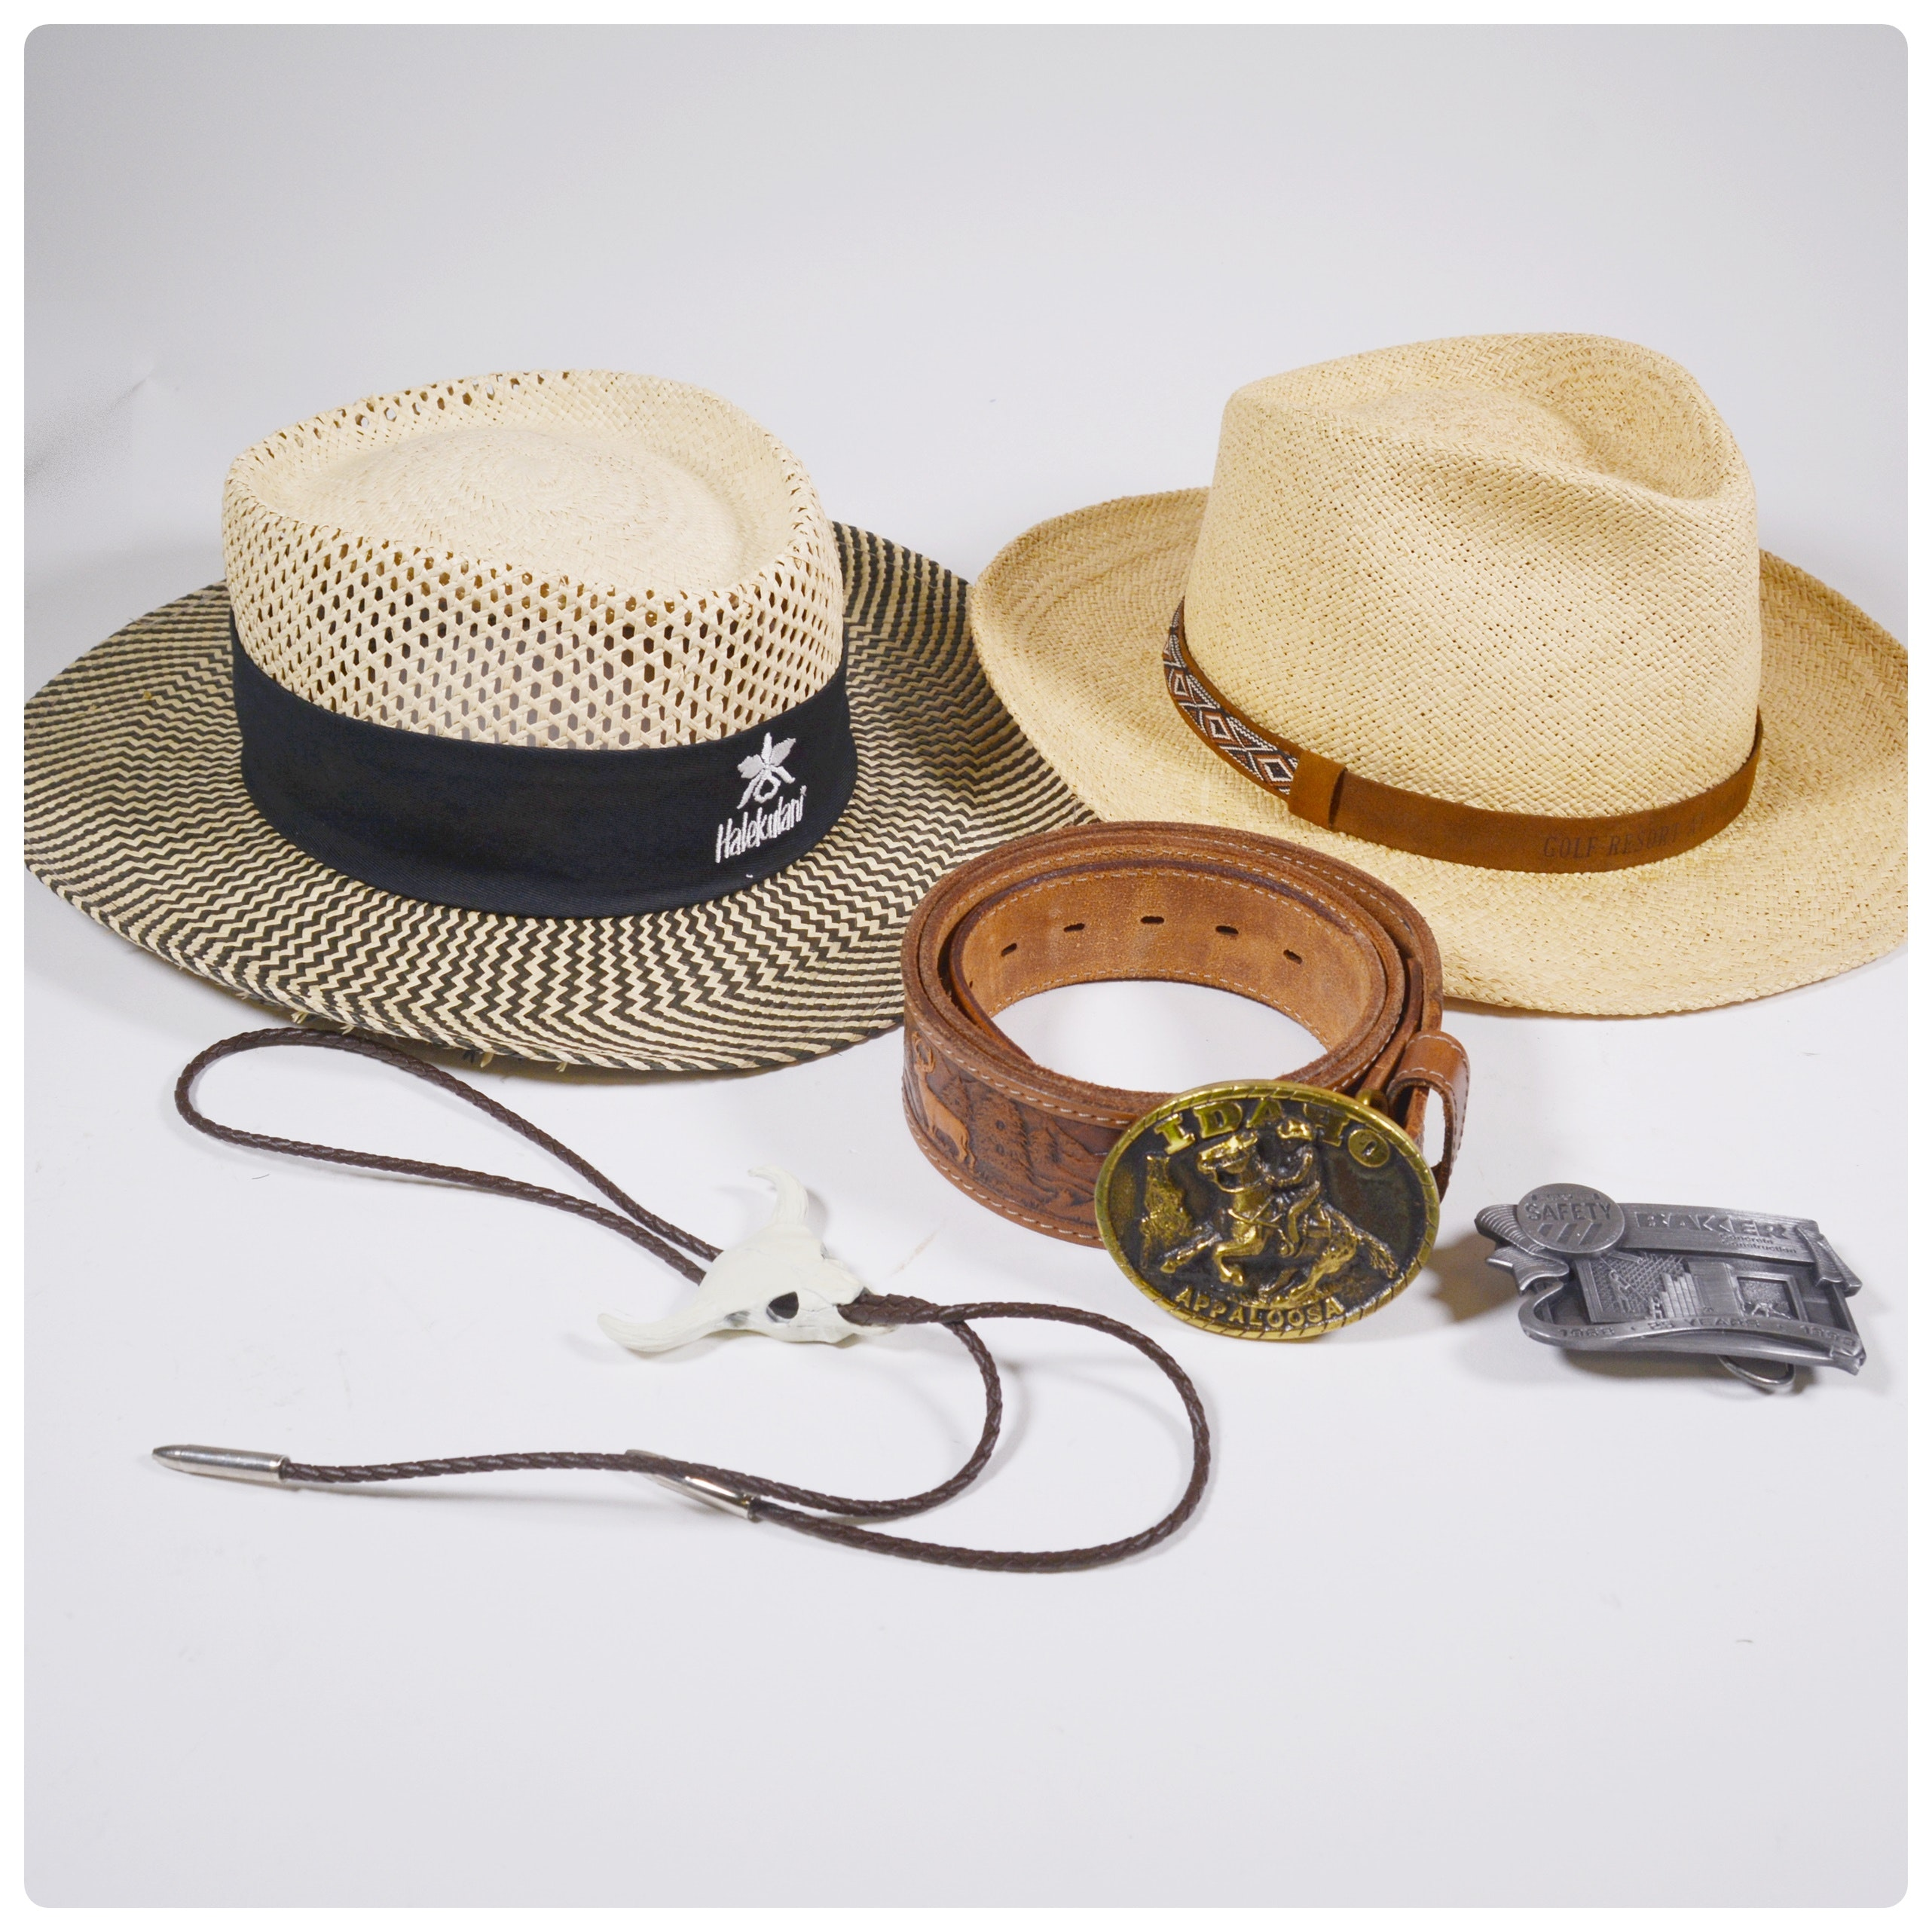 Straw Hats and Leather Belt With Buckles